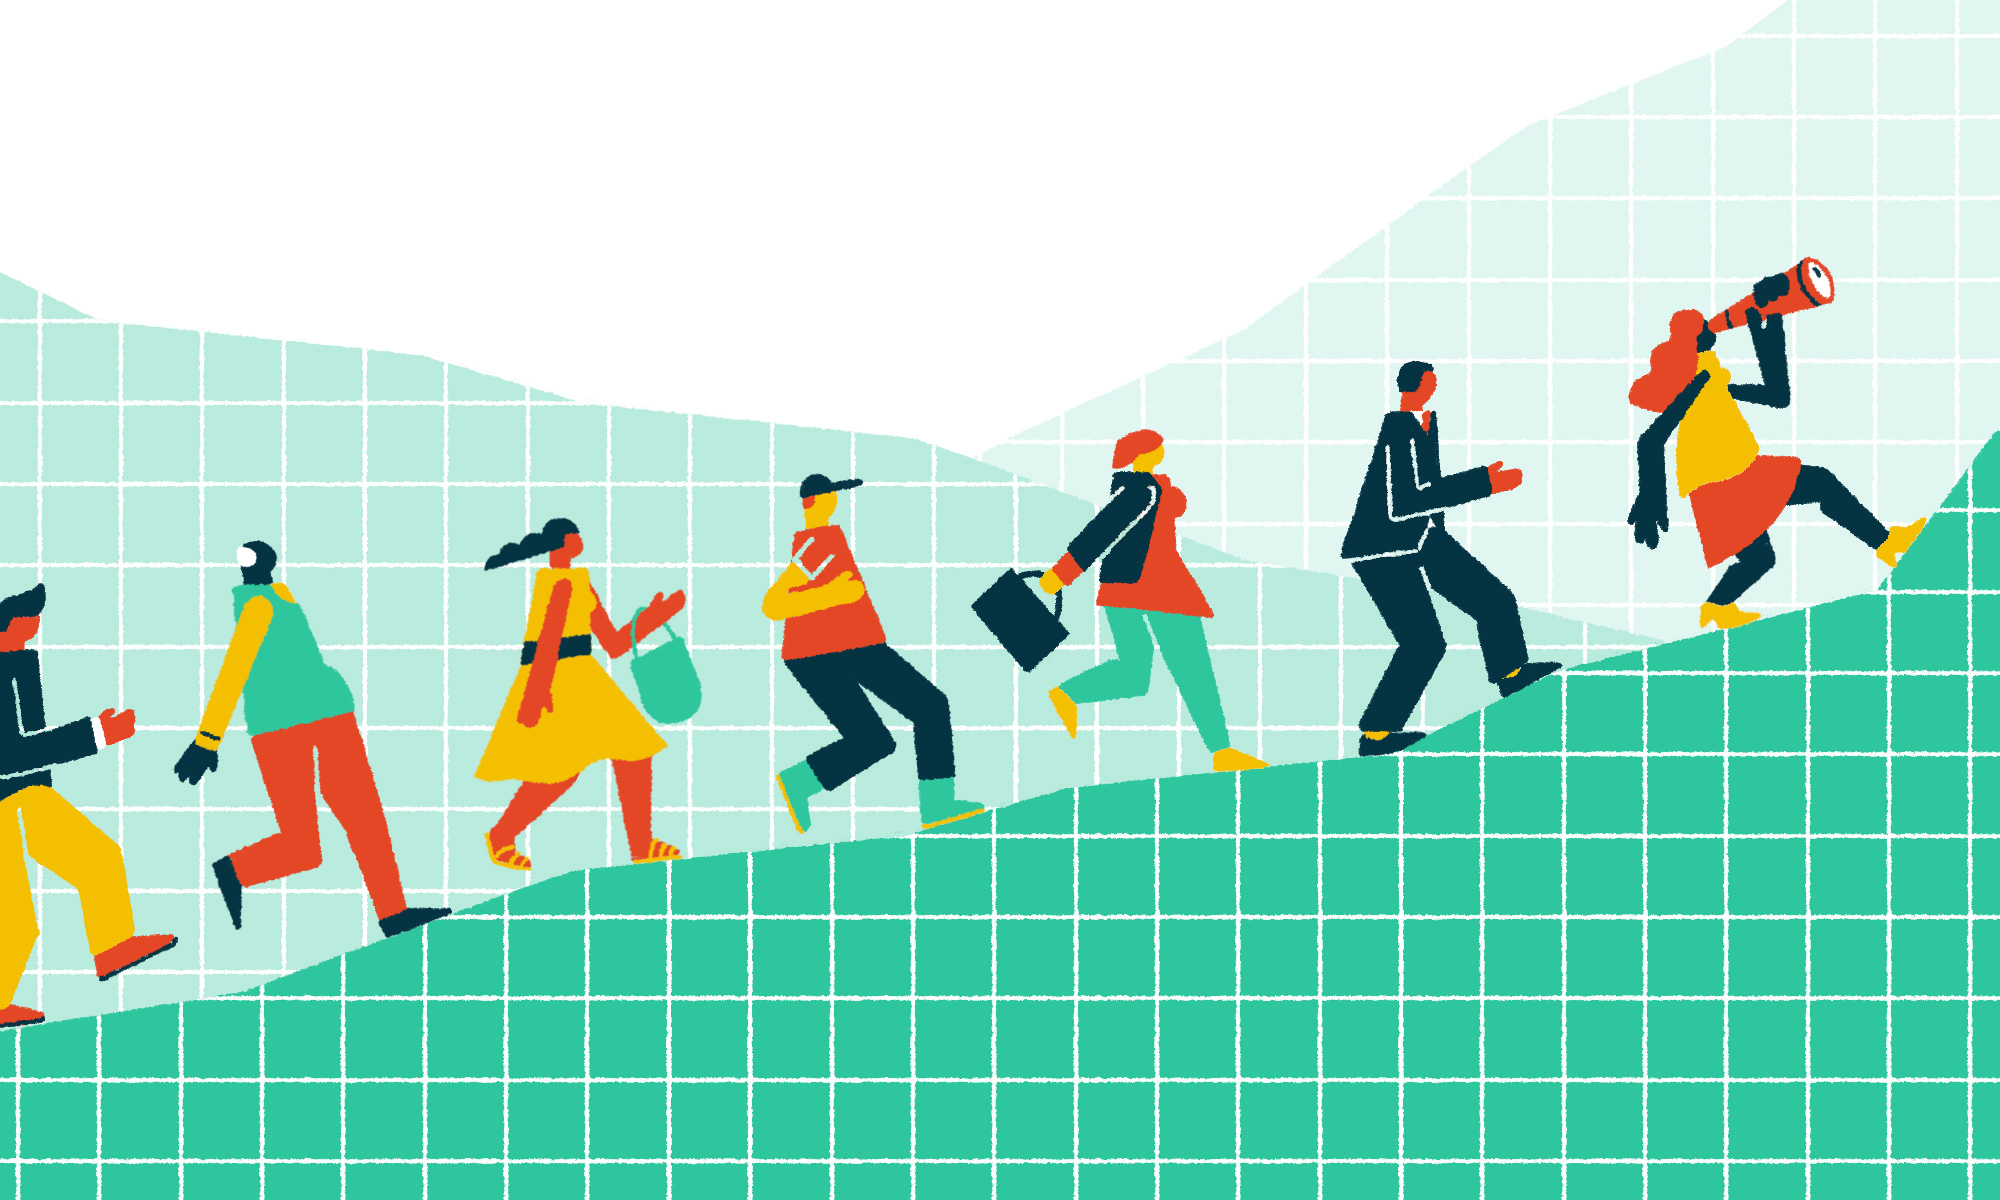 People walking up a graph - they are the future business woman and man of this world.